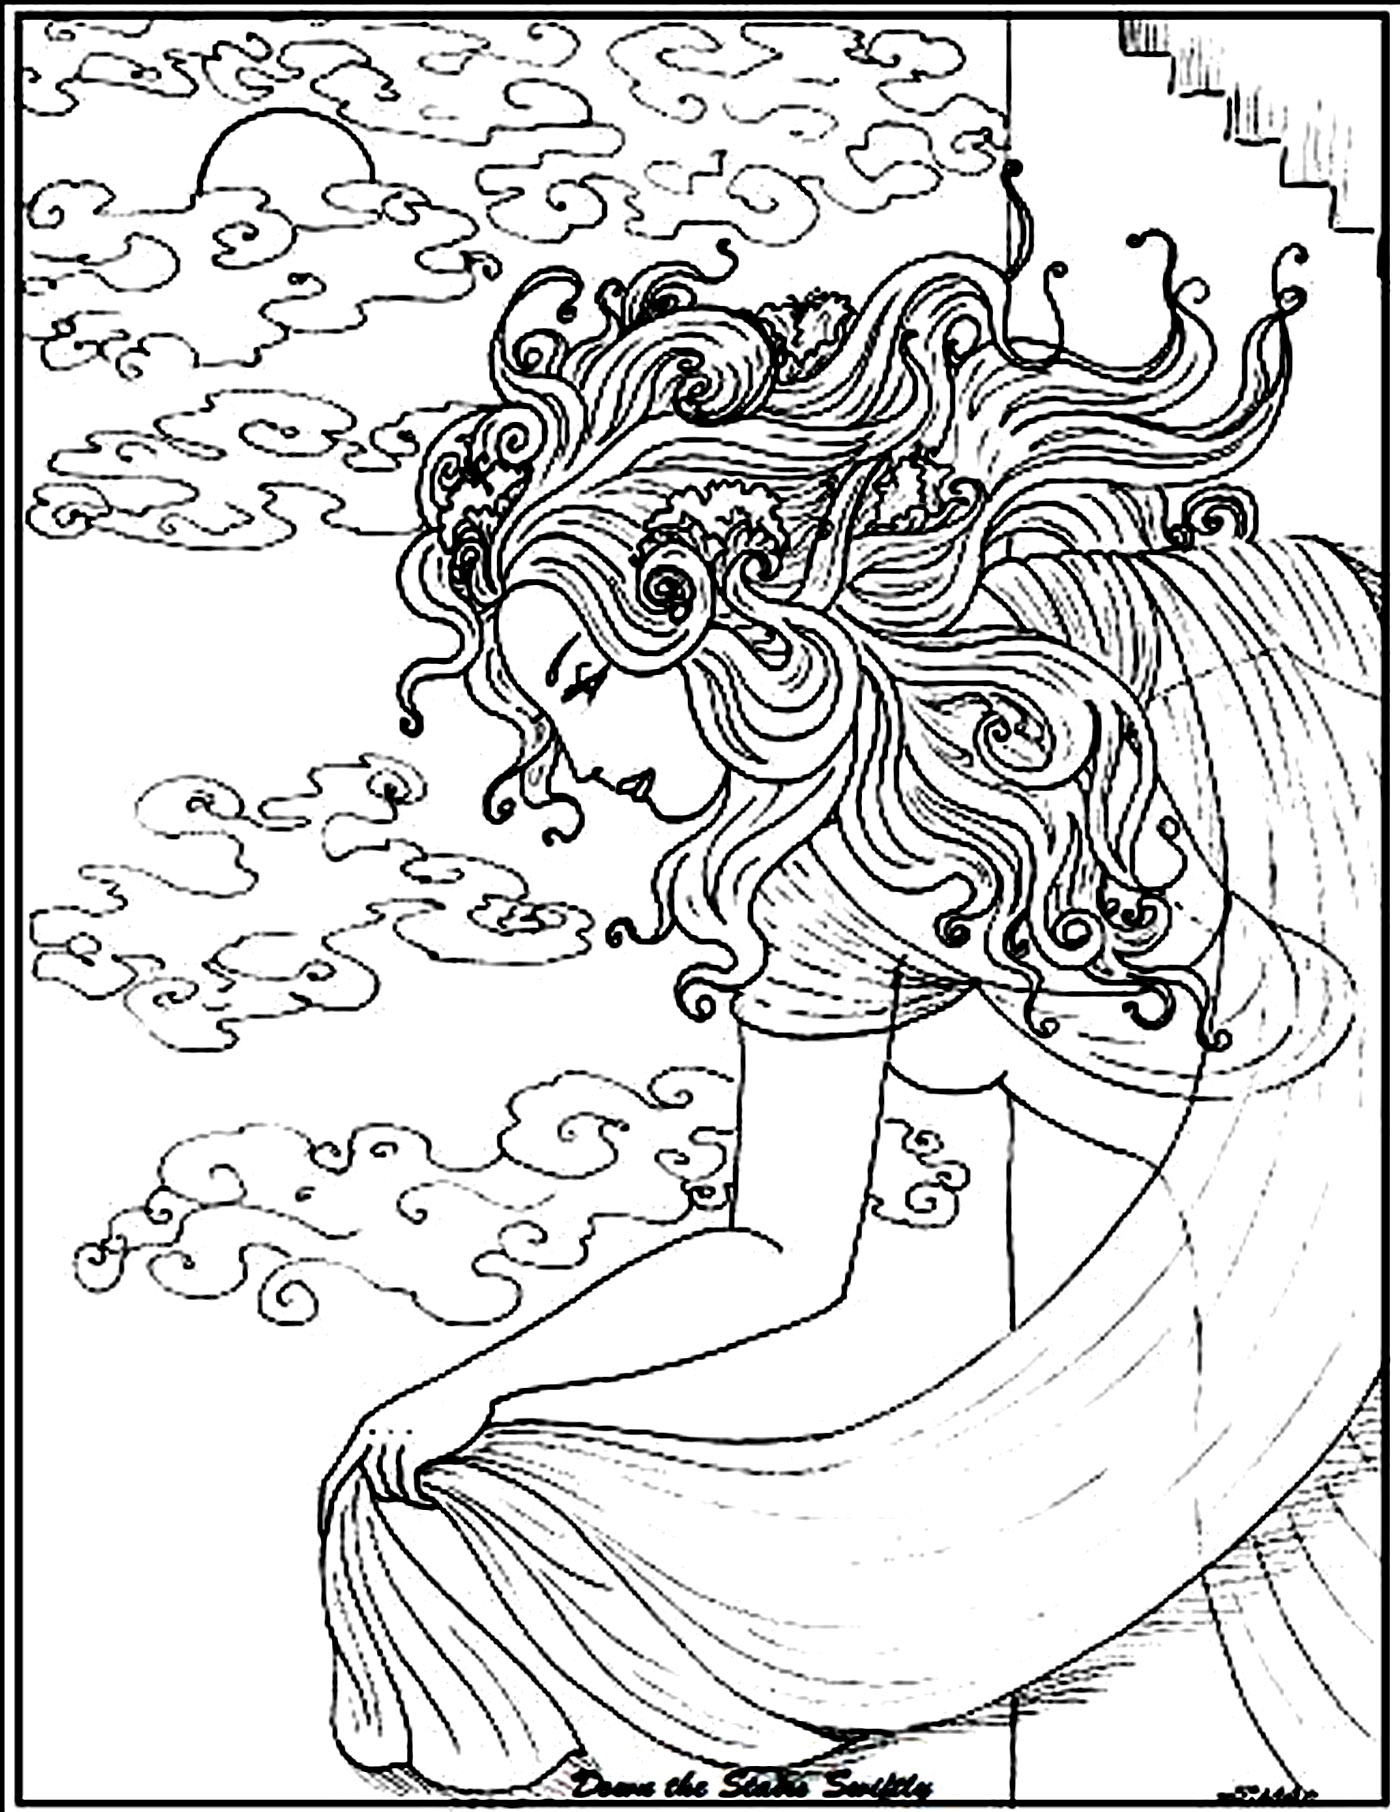 menadult coloring book pages - photo#22